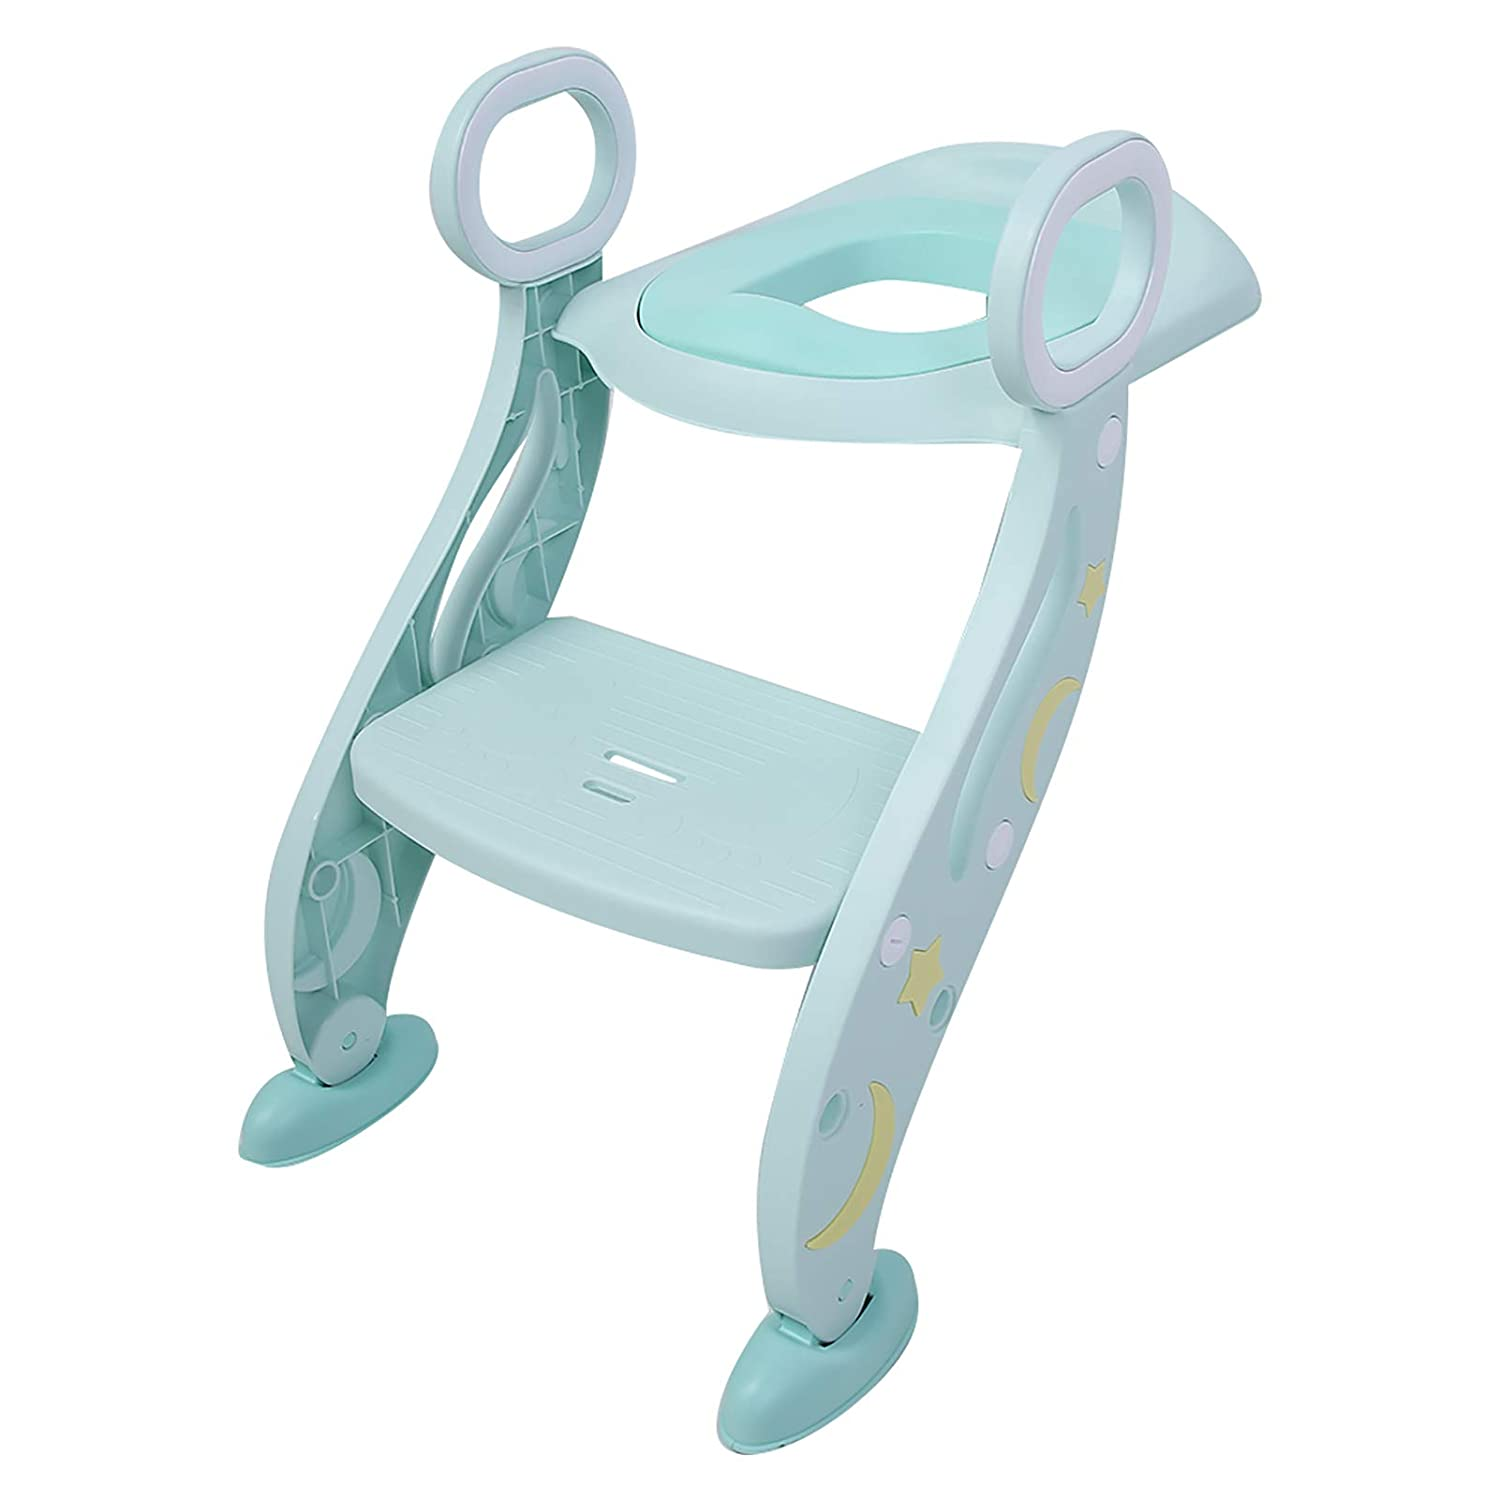 Potty Safe-Potty Training Seat Safely Tampa Mall Anti-Slip Popular with Silicone P